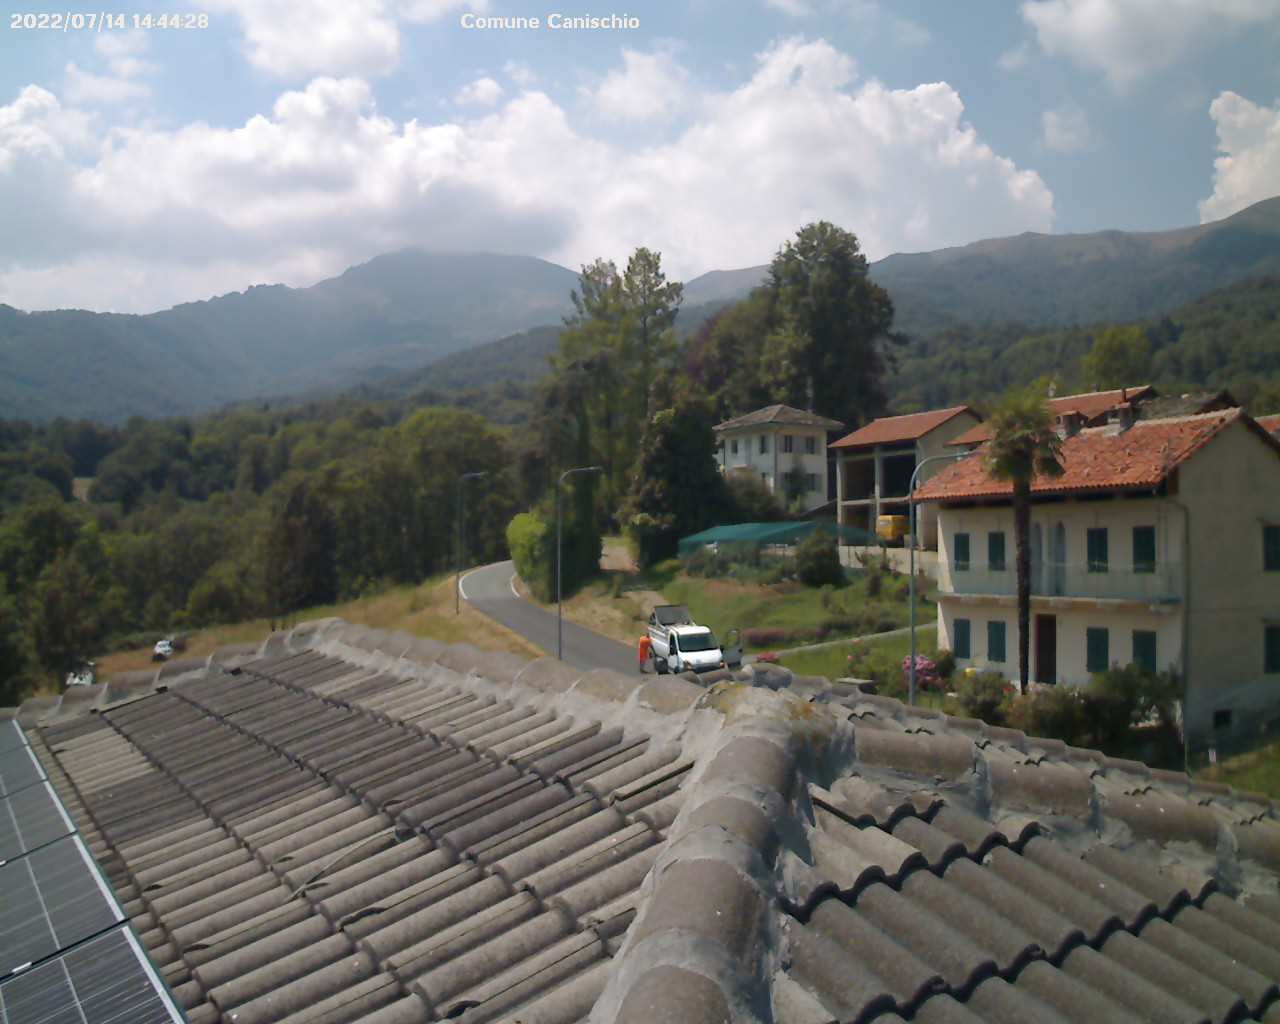 Webcam Comune di Canischio